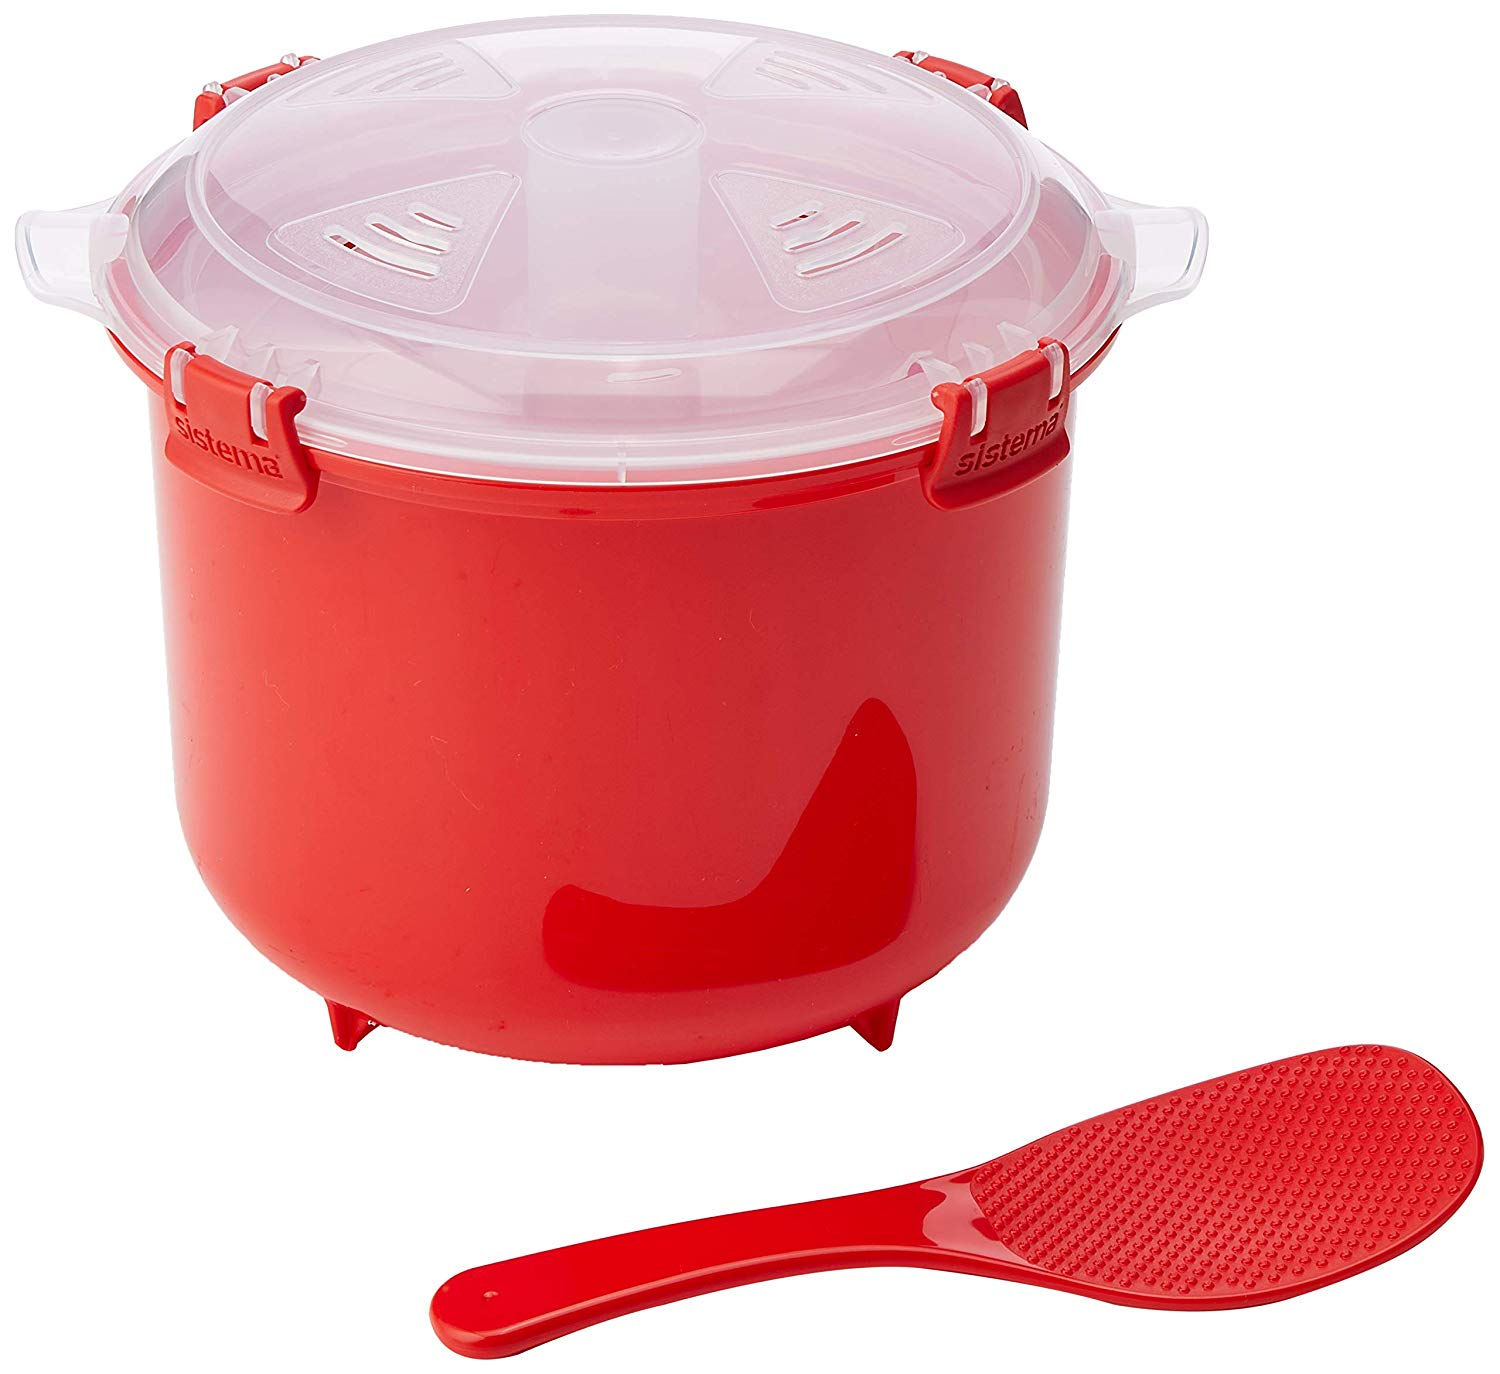 Microwave Rice Cooker, 2.6 L – Red/Clear